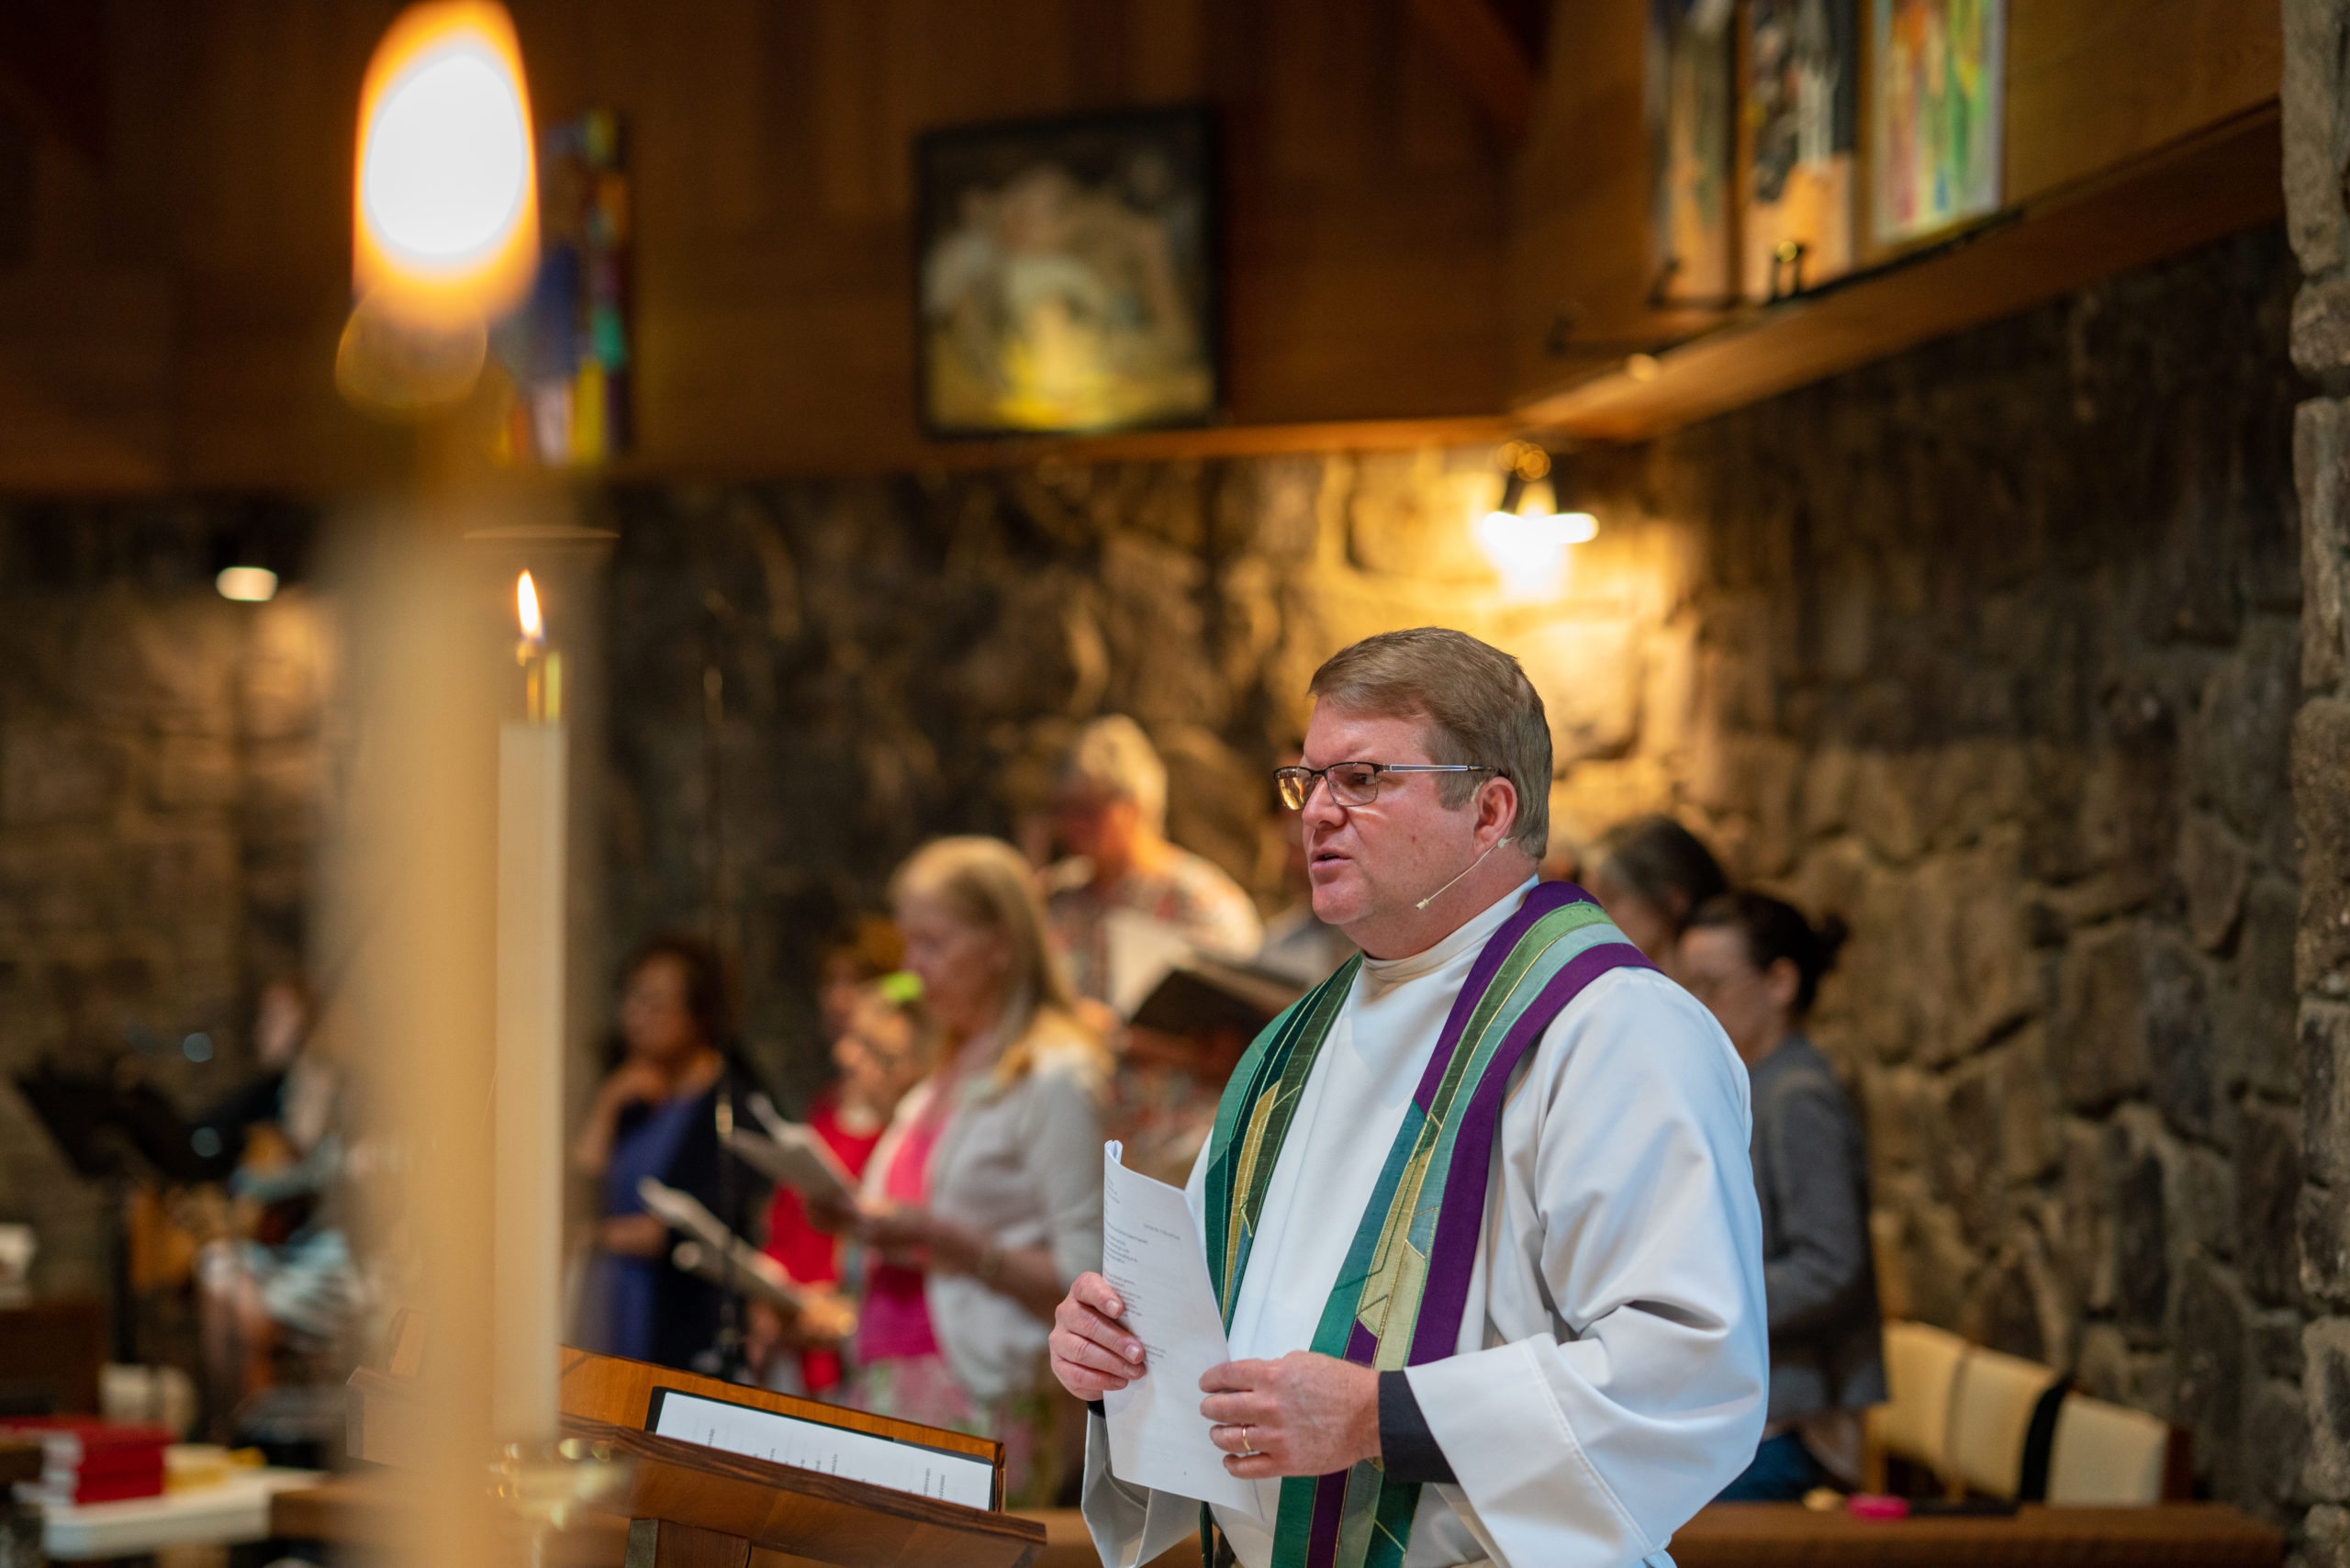 Rev. Richard Game delivering a sermon